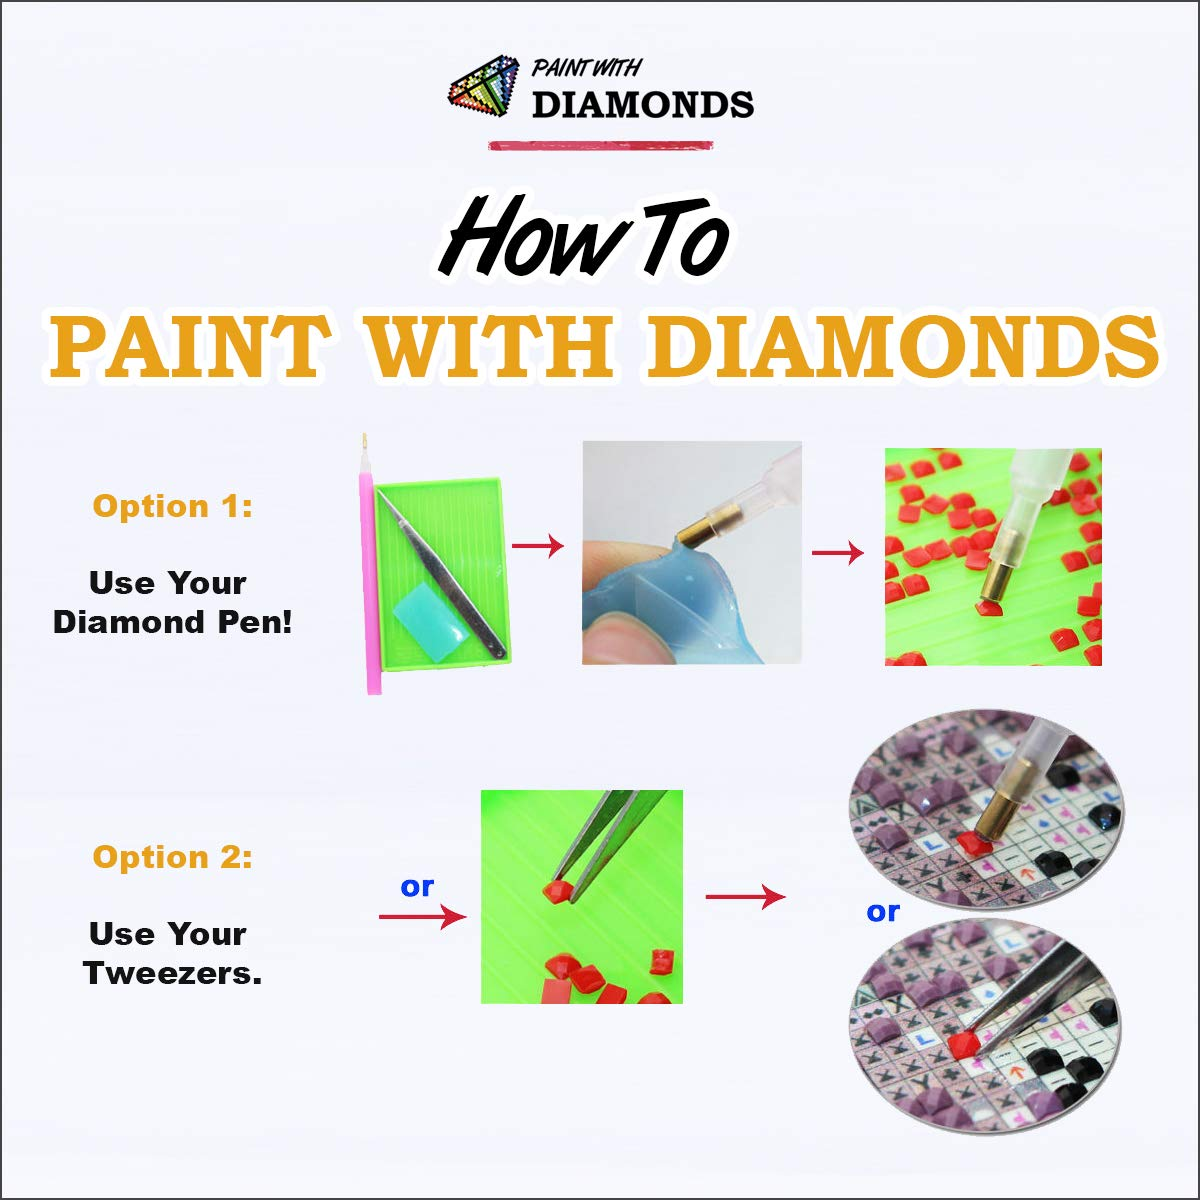 Diamond Painting Kits for Adults by Paint With Diamonds XL 60x40cm 'Eagle's Cry' Full Canvas Square Diamonds (Plus Free Premium Diamond Pen) by Paint With Diamonds (Image #7)